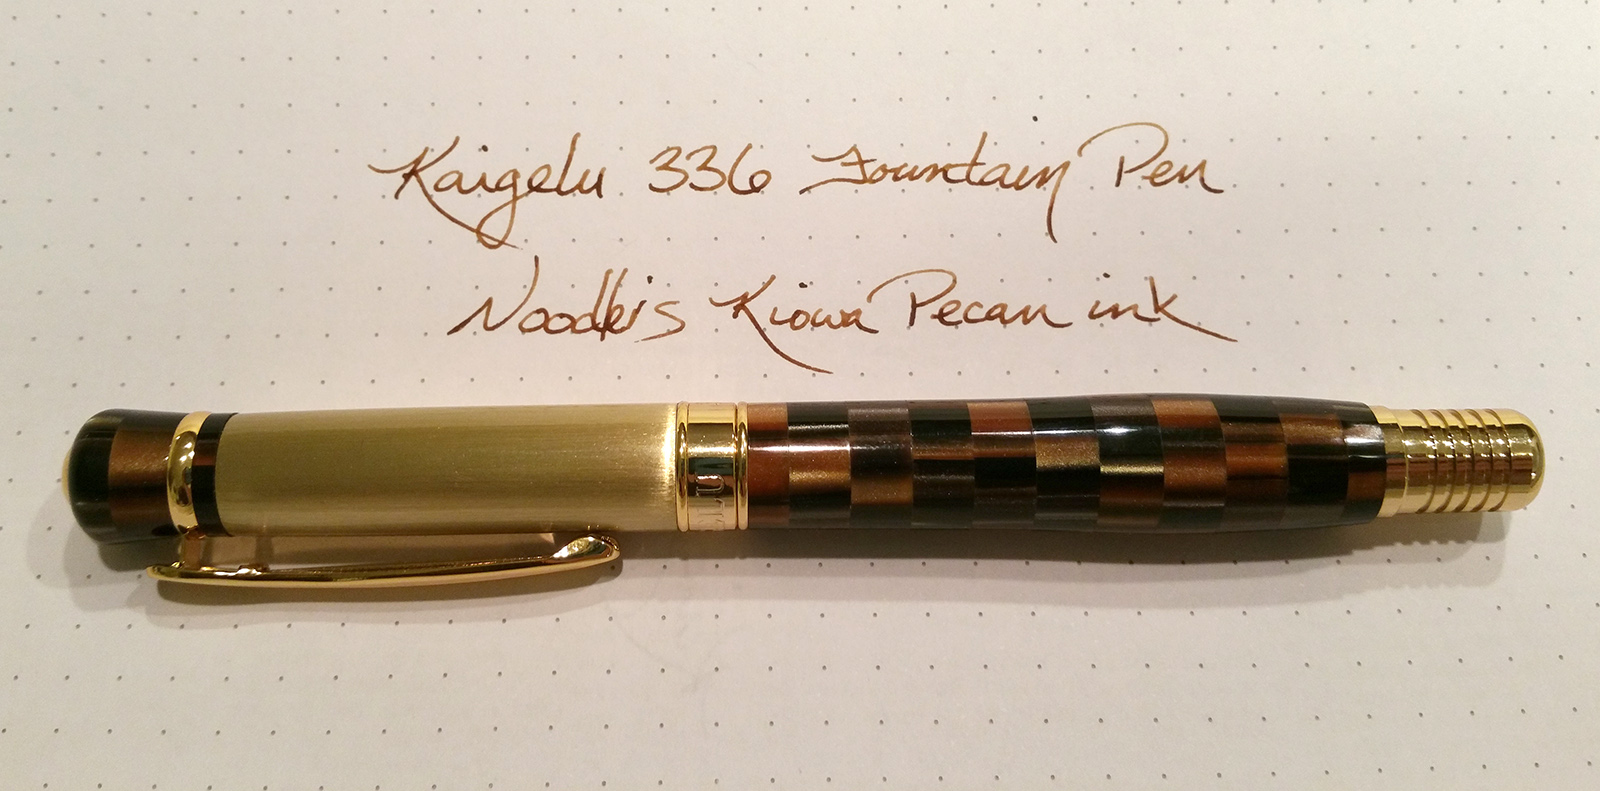 Kaigelu 336 Fountain Pen and Writing Sample